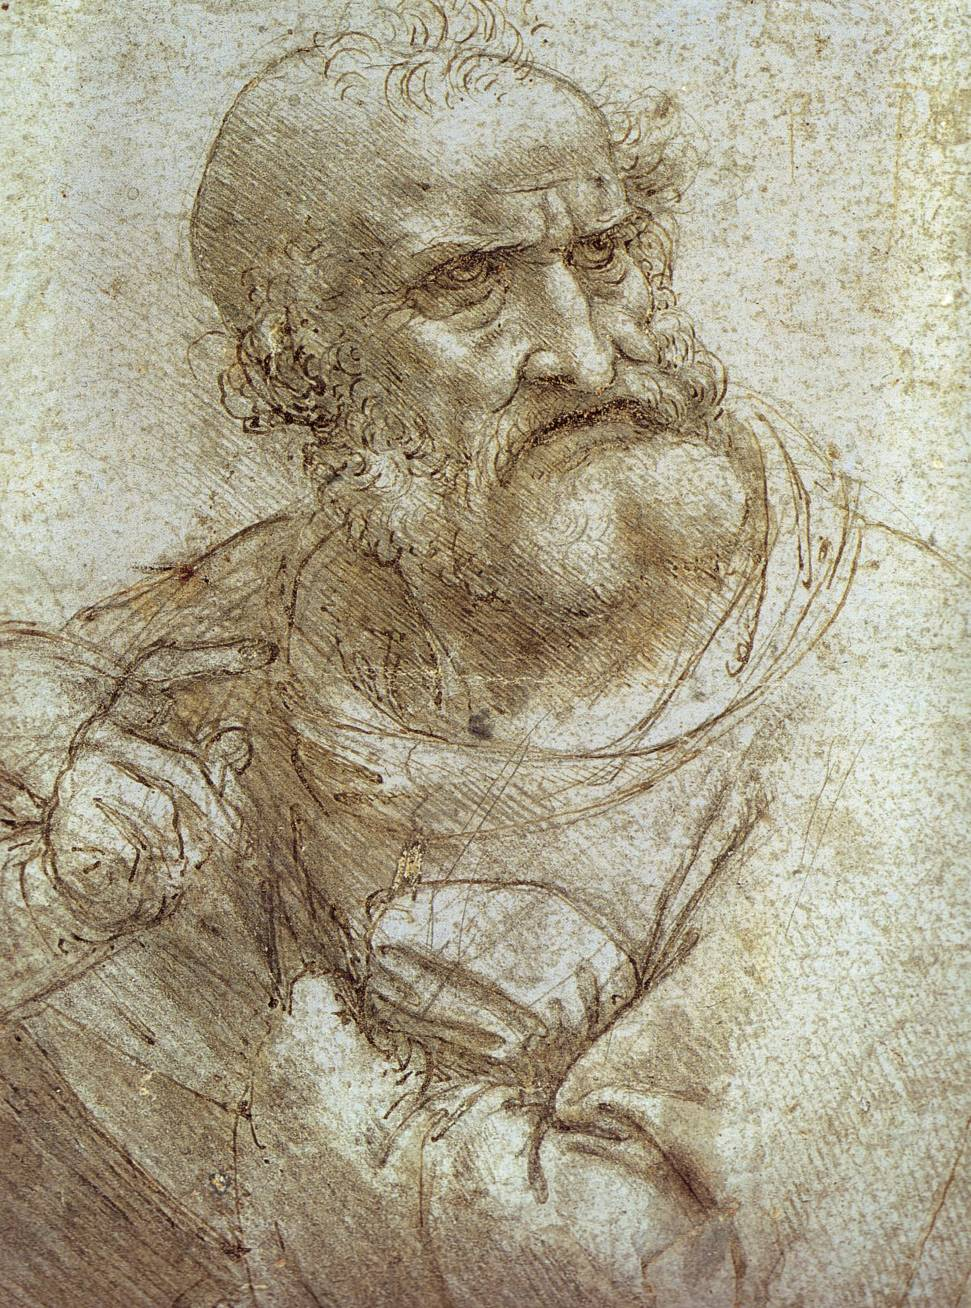 Study for the Last Supper, c. 1495